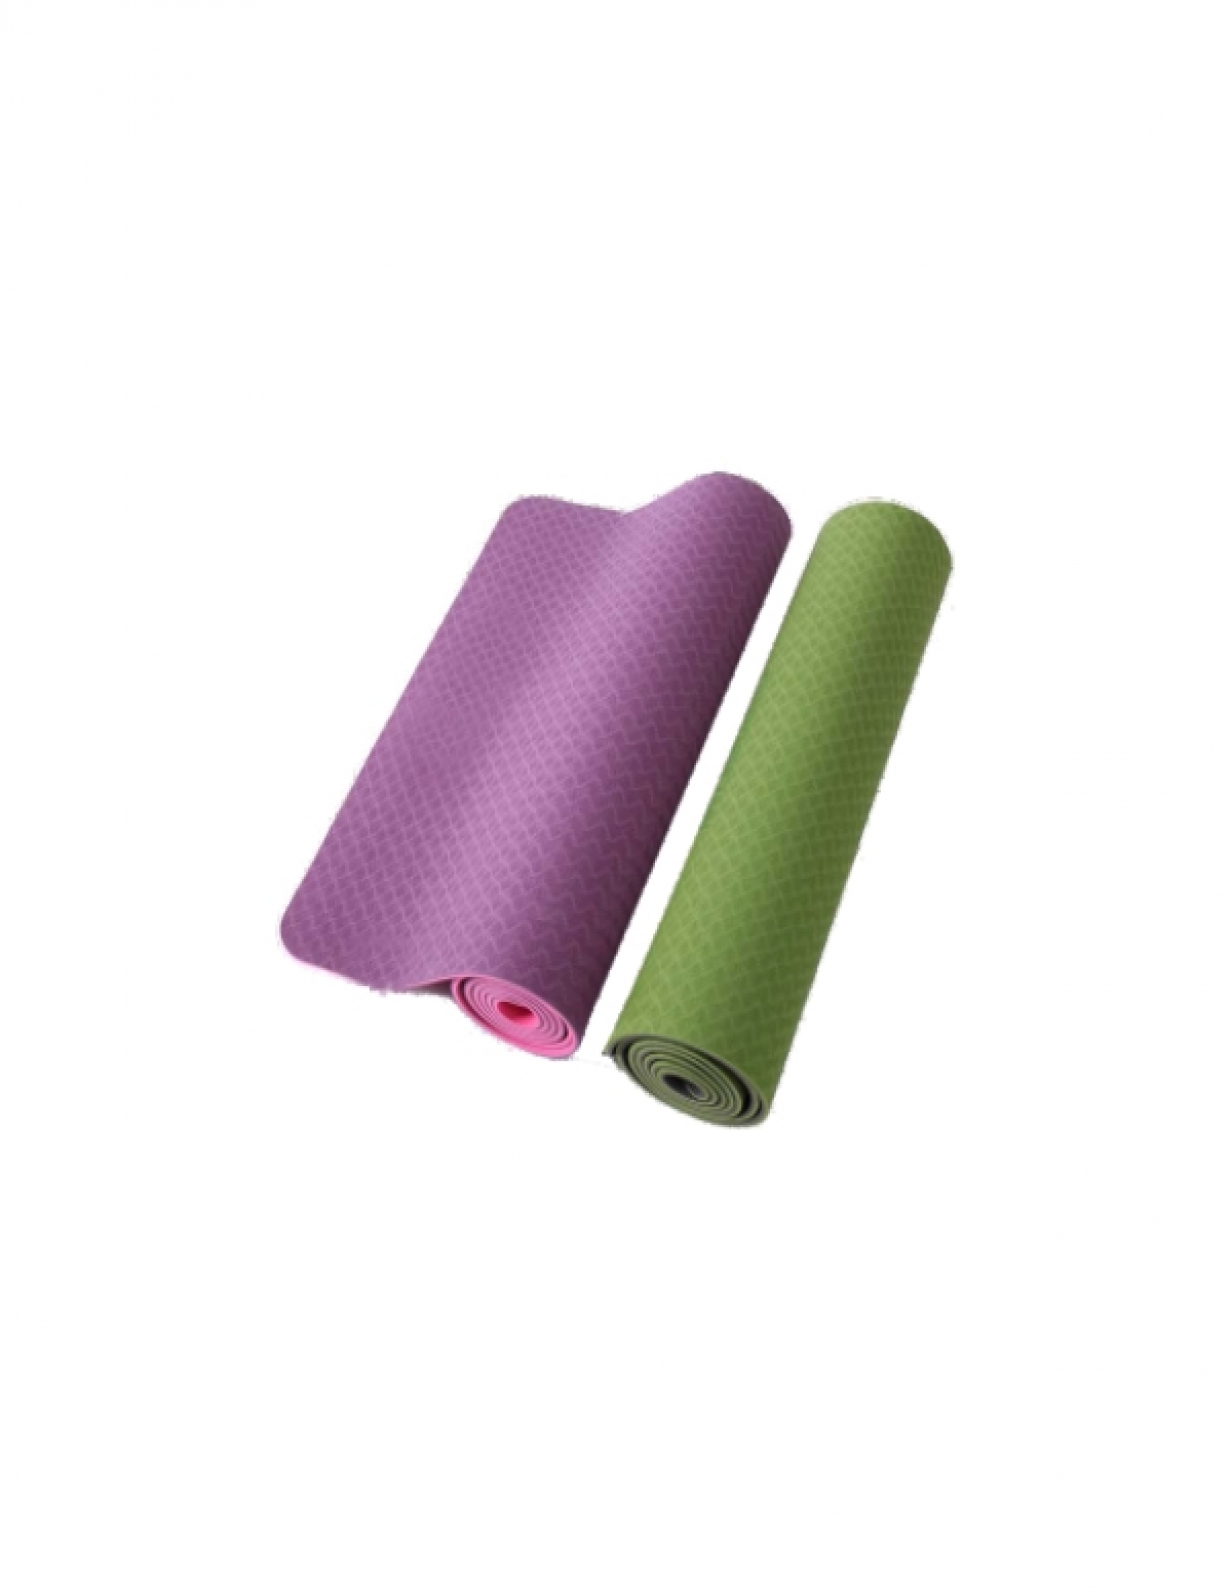 WC 9012 4MM TYPE YOGA MAT